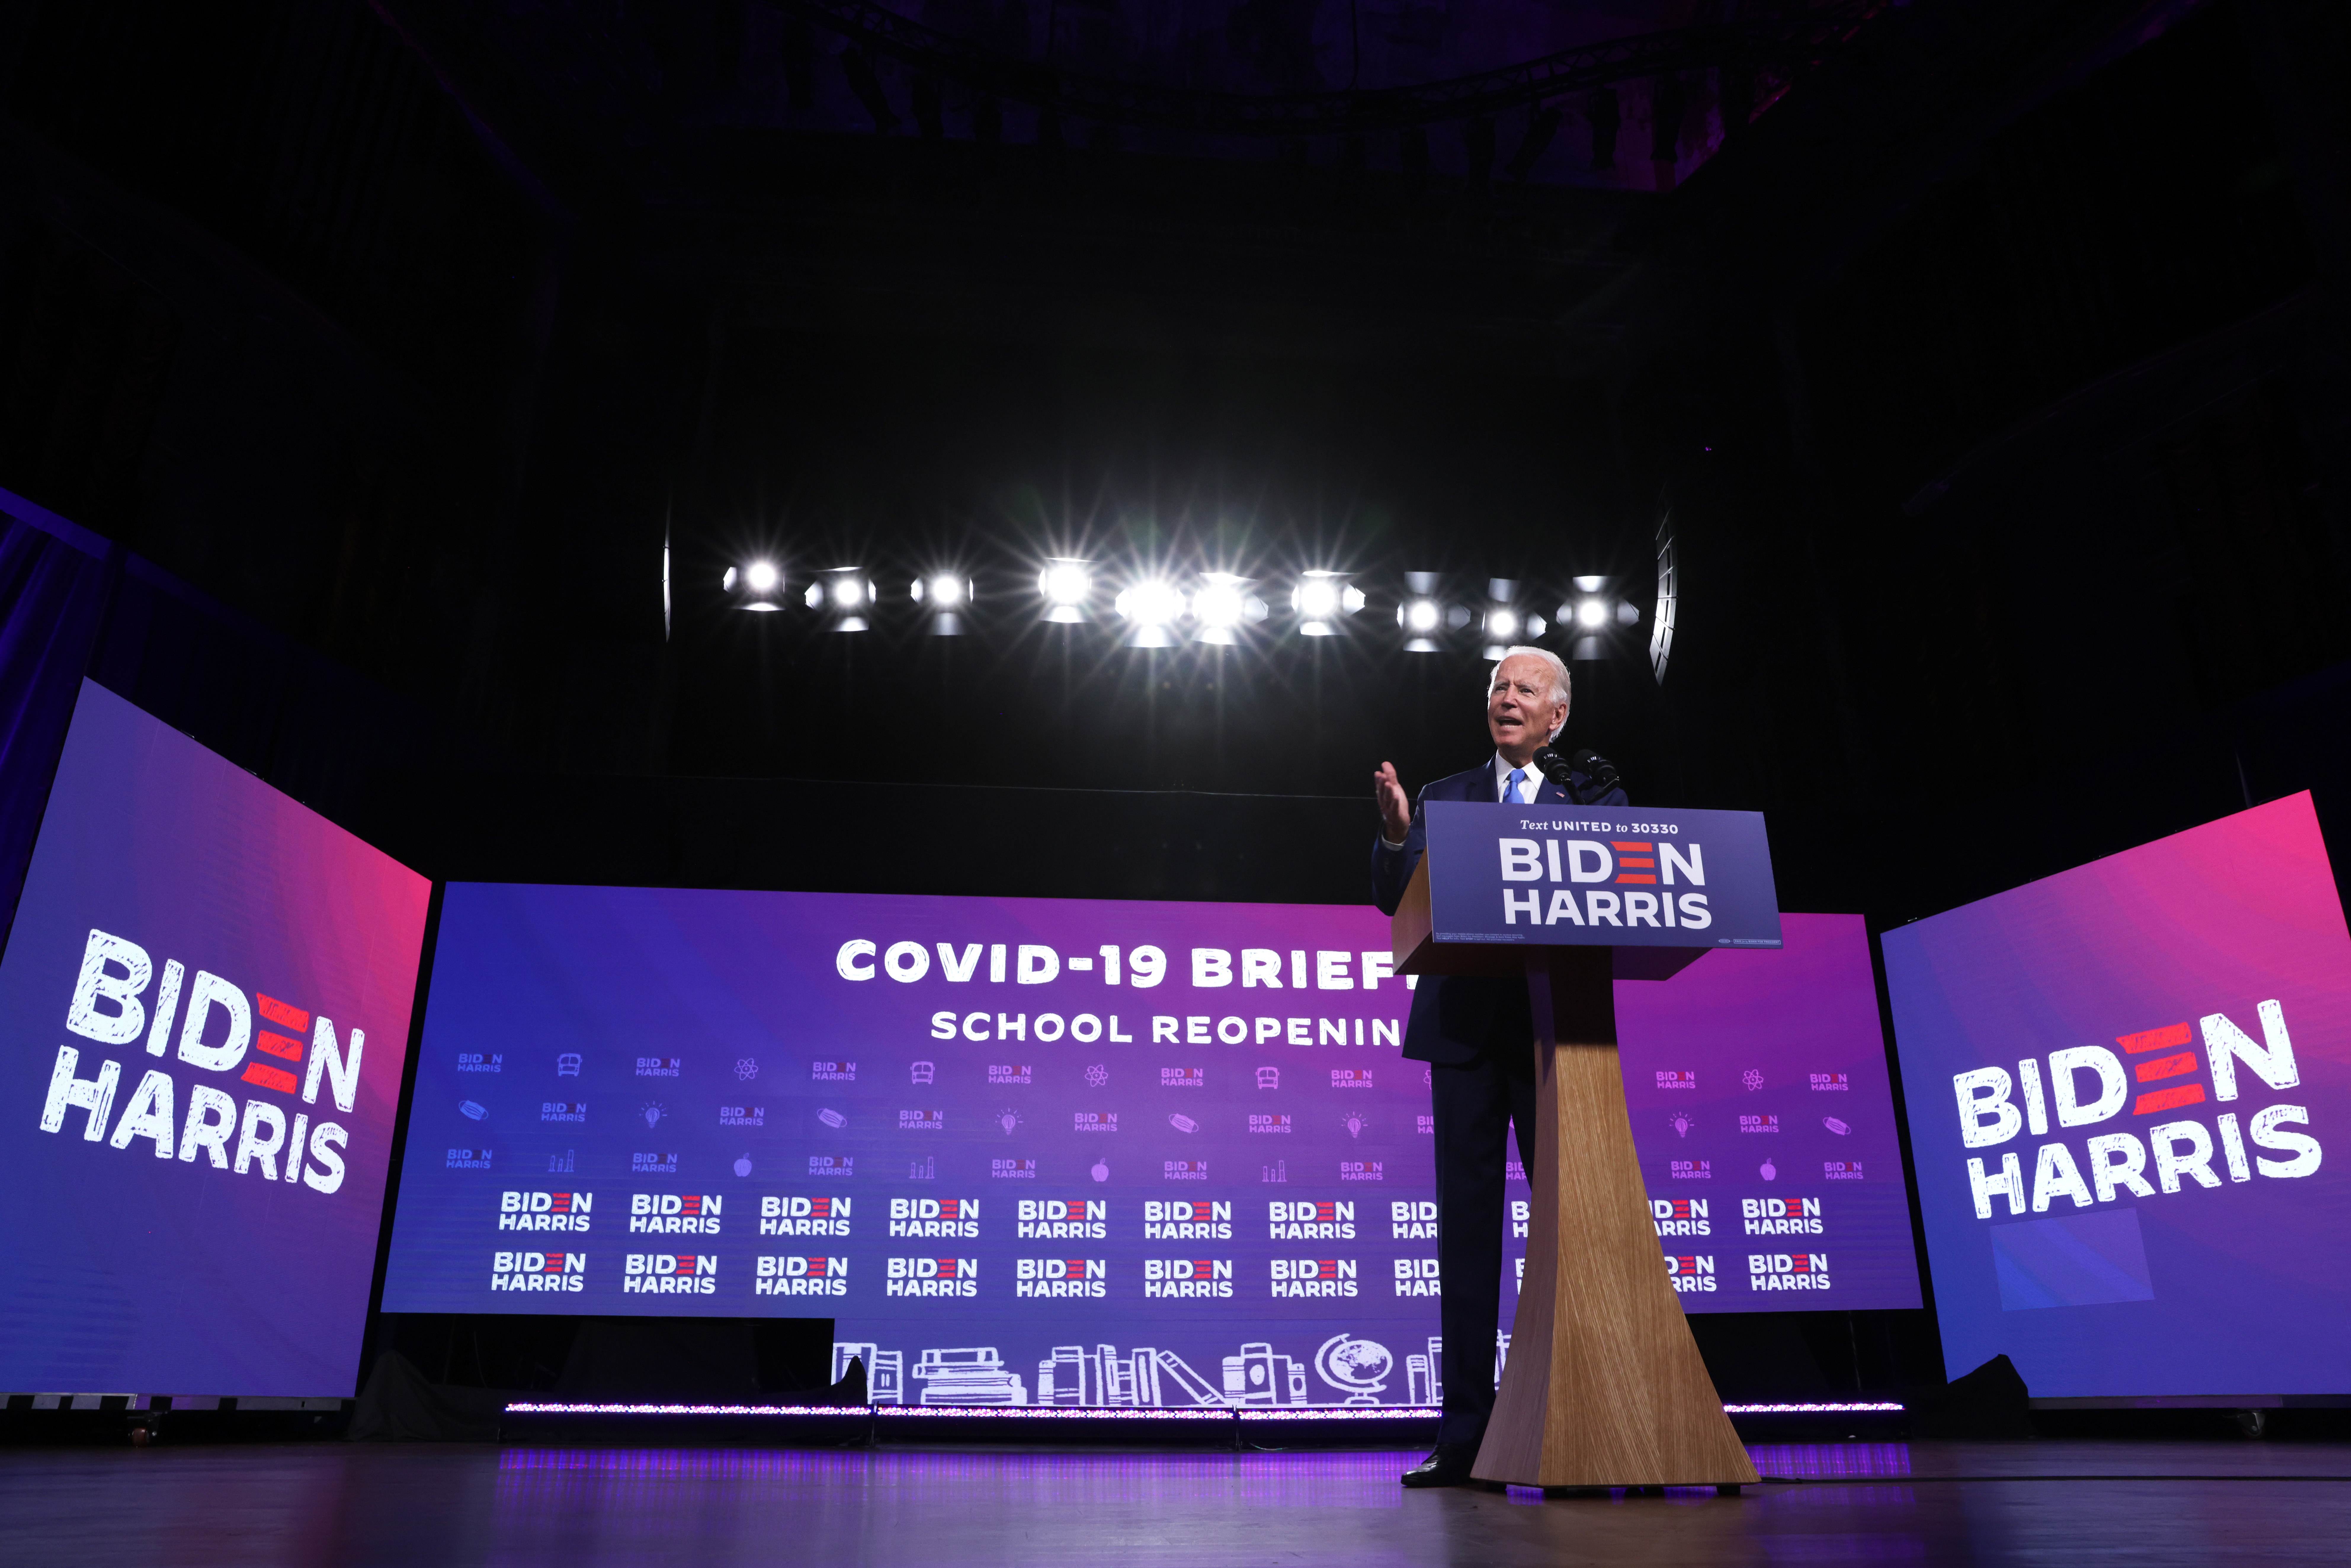 President-elect Joe Biden speaks about safely reopening schools during the coronavirus pandemic at a campaign event Sept. 2, 2020 in Wilmington, Delaware.